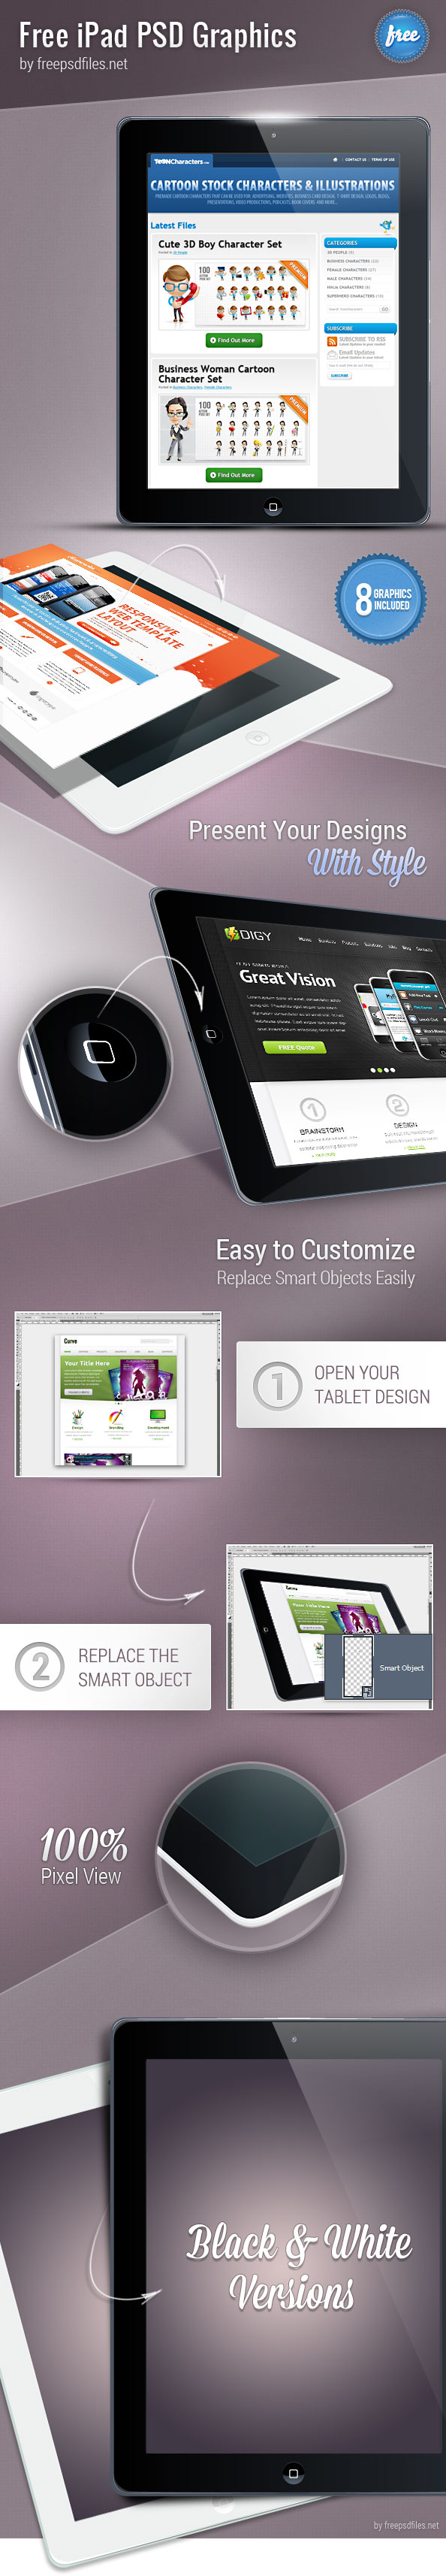 iPad PSD graphics designed in perspective views. We have included both white and black versions in our PSD. Download this massive PSD set and use it to present your applications in an eye-catchy way. Continue reading